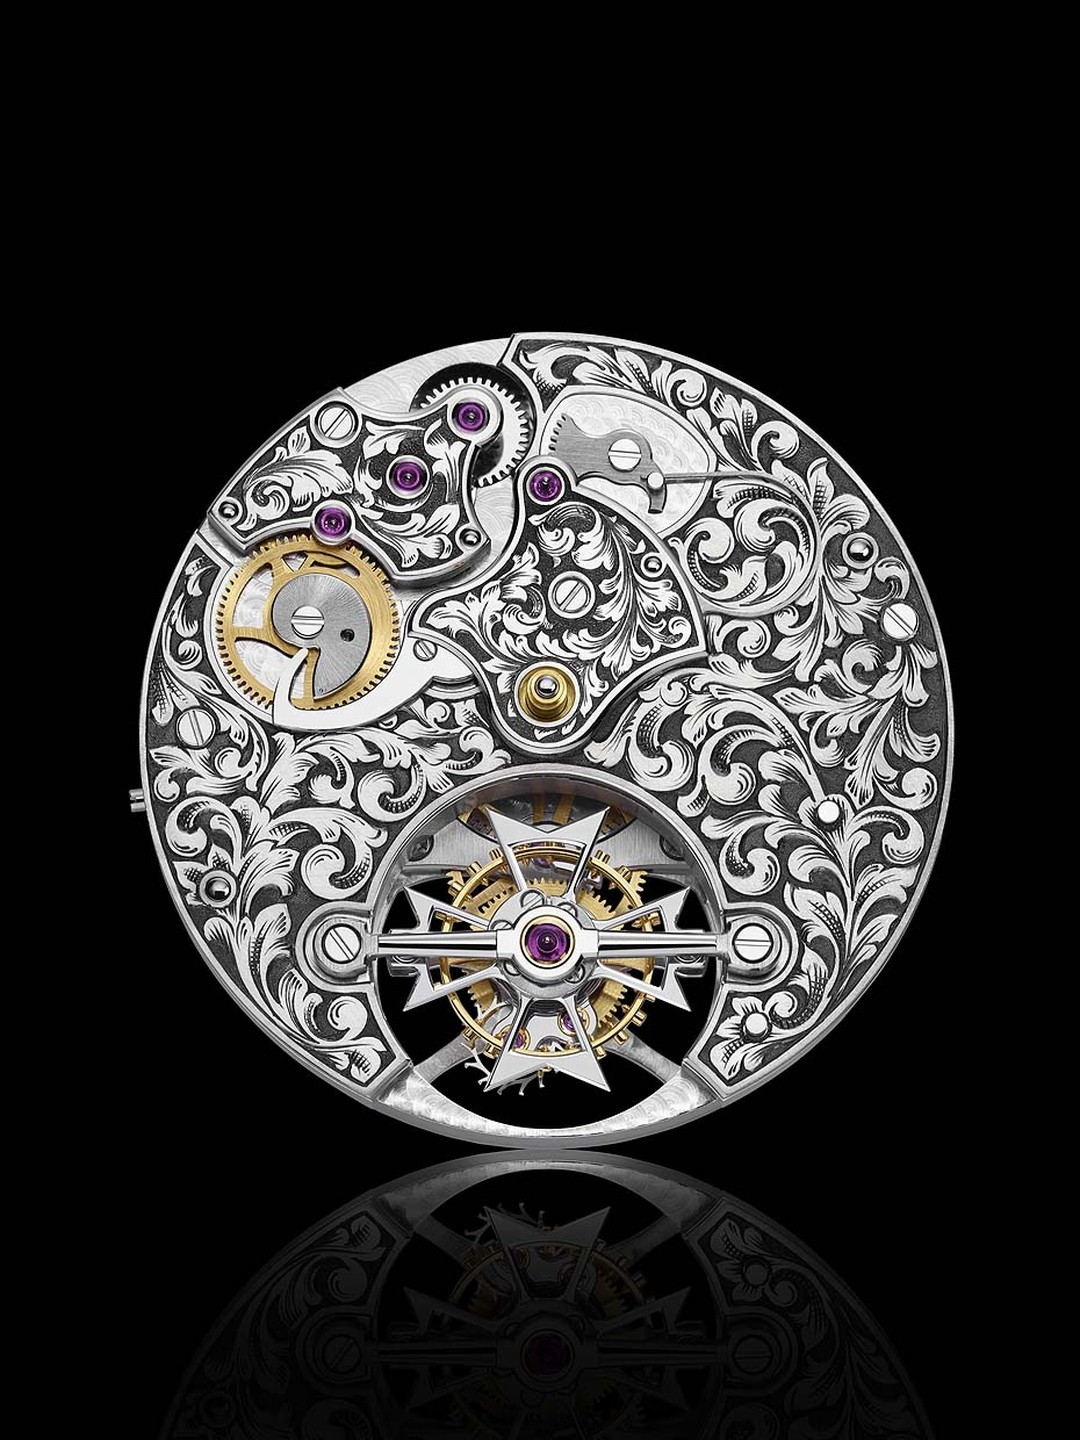 A view of the dial side of Vacheron Constantin's Mécaniques Gravées calibre 2260 watch, highlighting the hand-engraved motifs that took 10 days to complete.